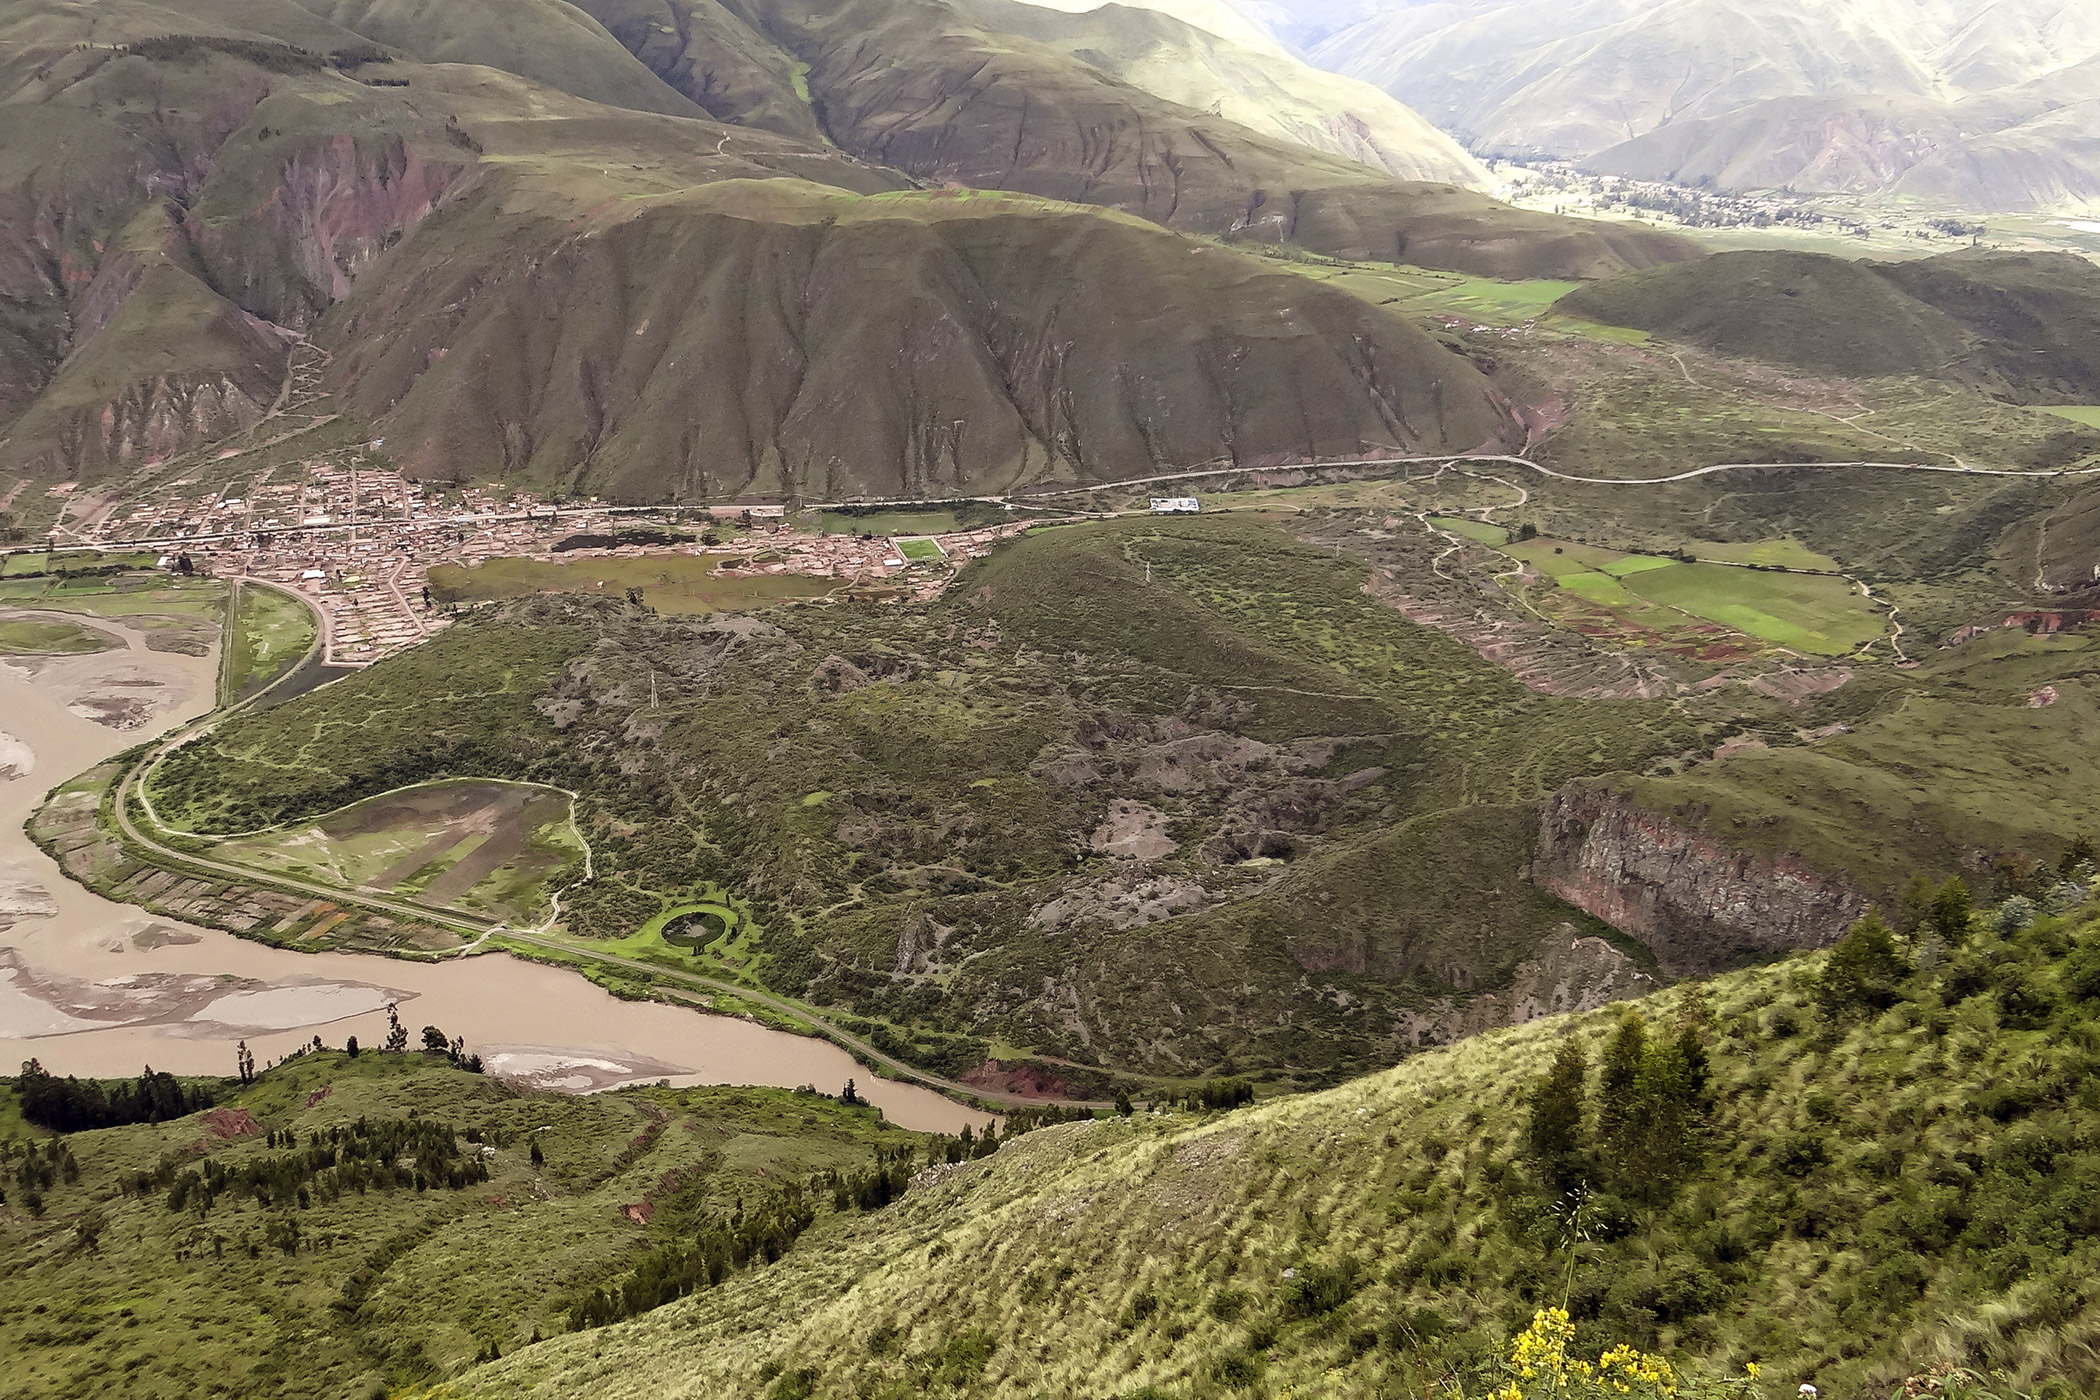 Peru, Rumiqolqa: The overexploitation of the quarry of Rumiqolqa threatens the pre-Inca and Inca archaeological remains found at the site.